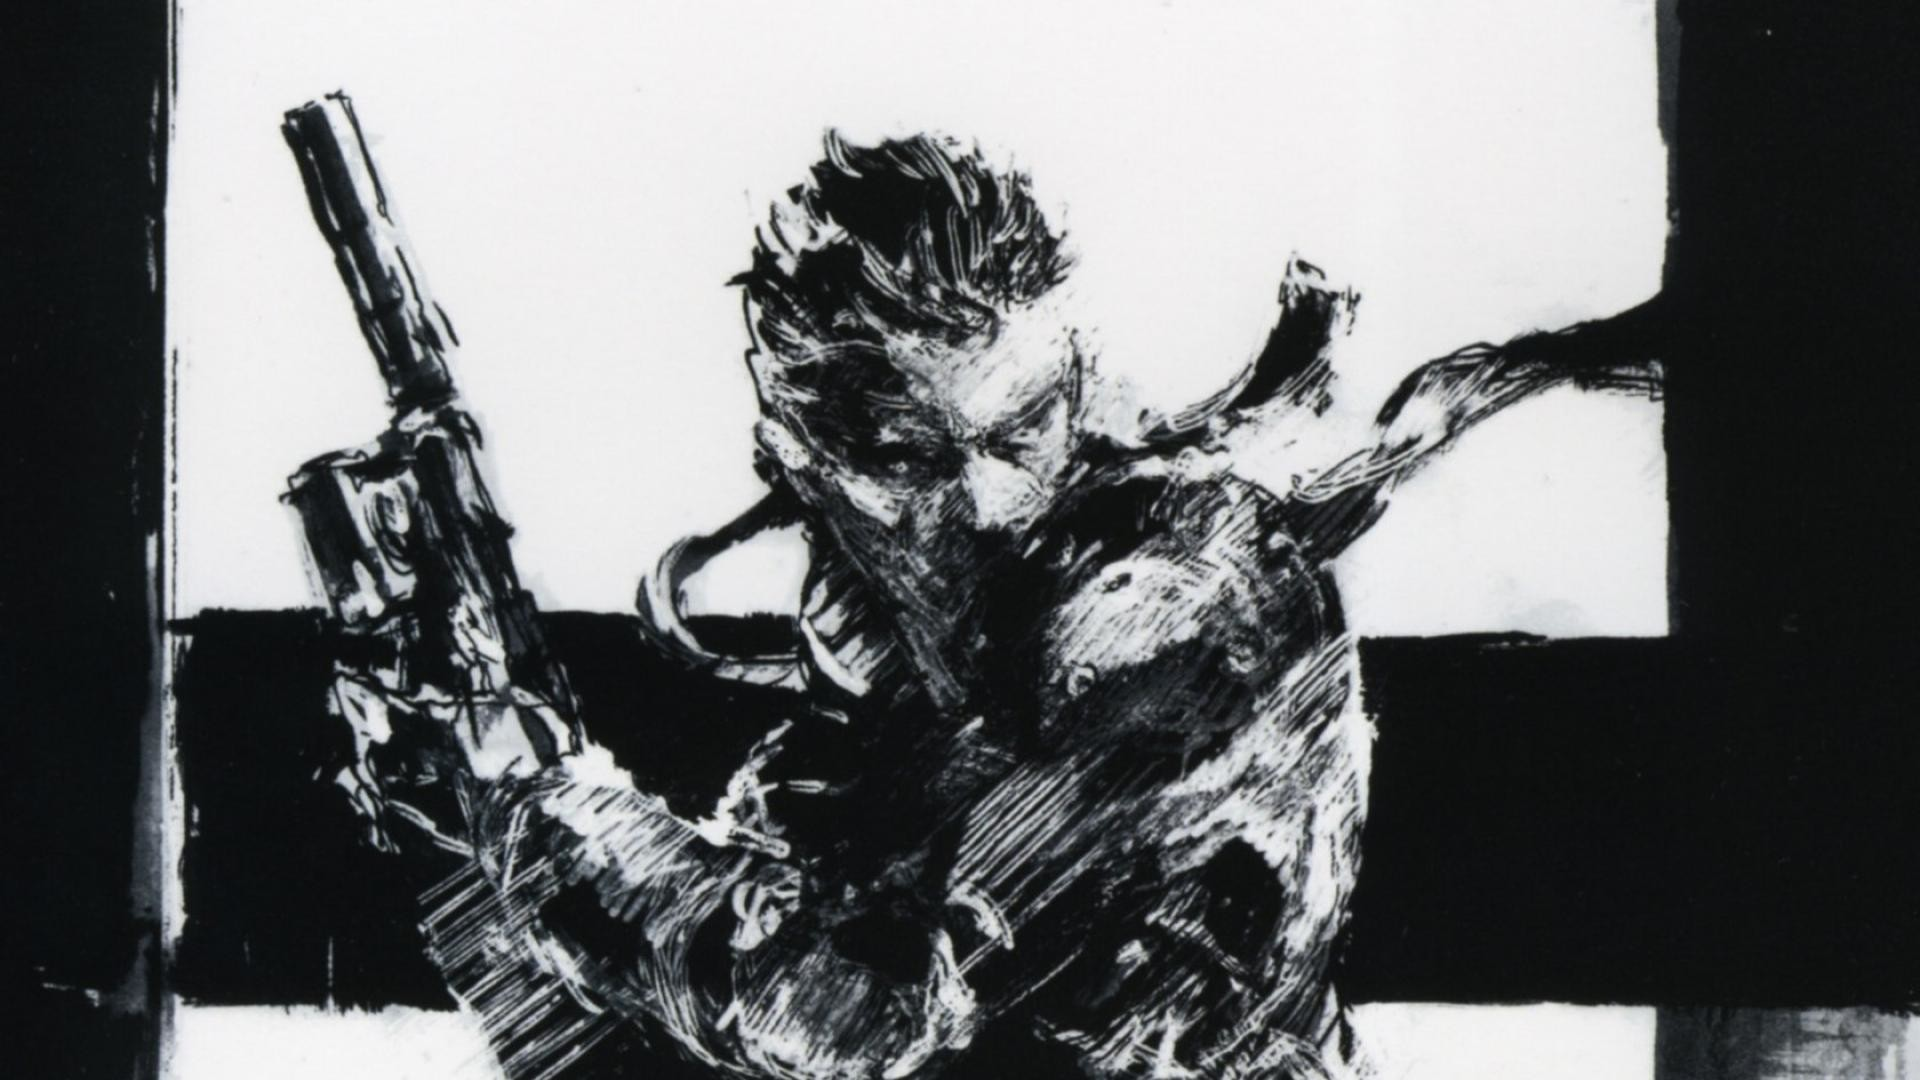 Metal Gear Solid Wallpaper 1920x1080 Posted By Samantha Tremblay